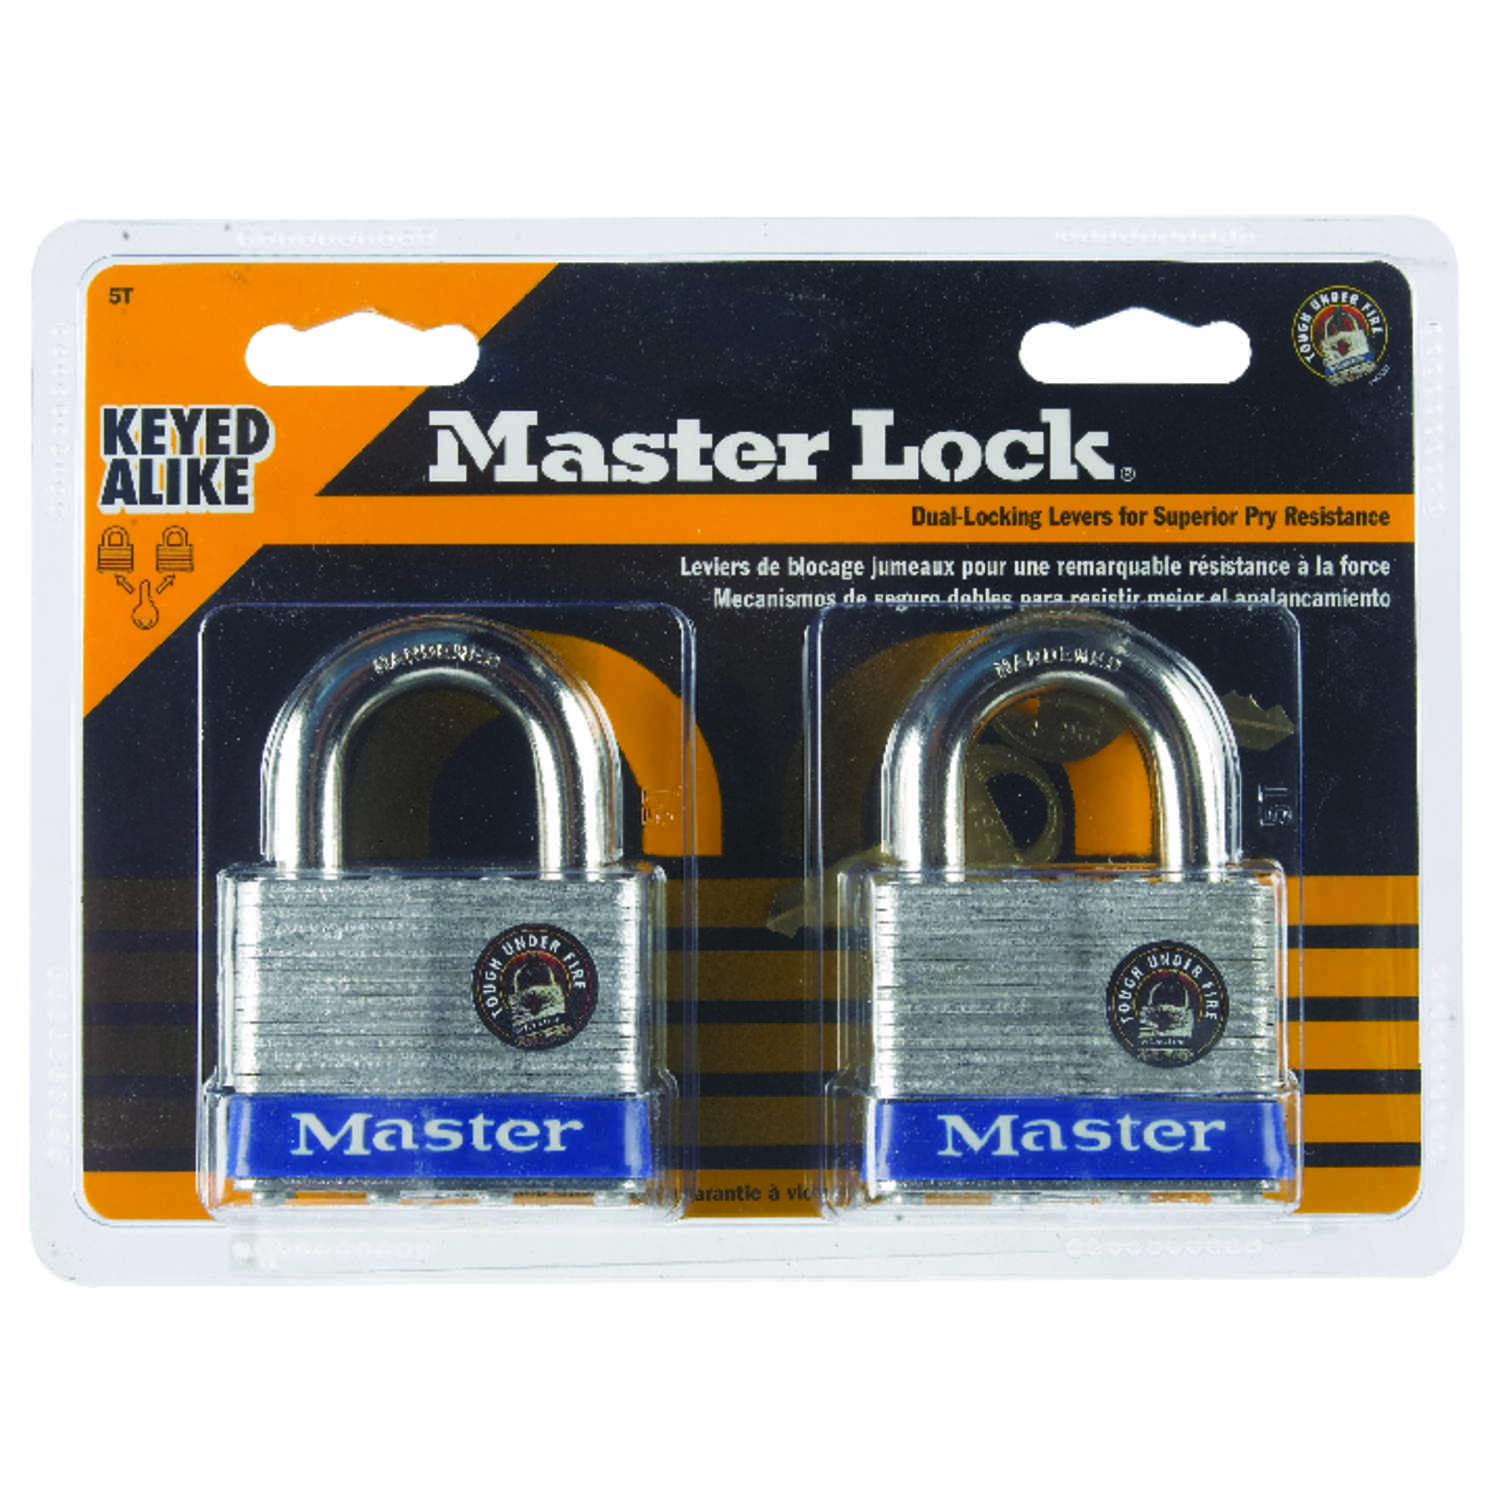 Master Lock  1-1/2 in. H x 7/8 in. W x 2 in. L Laminated Steel  4-Pin Cylinder  Padlock  2 pk Keyed